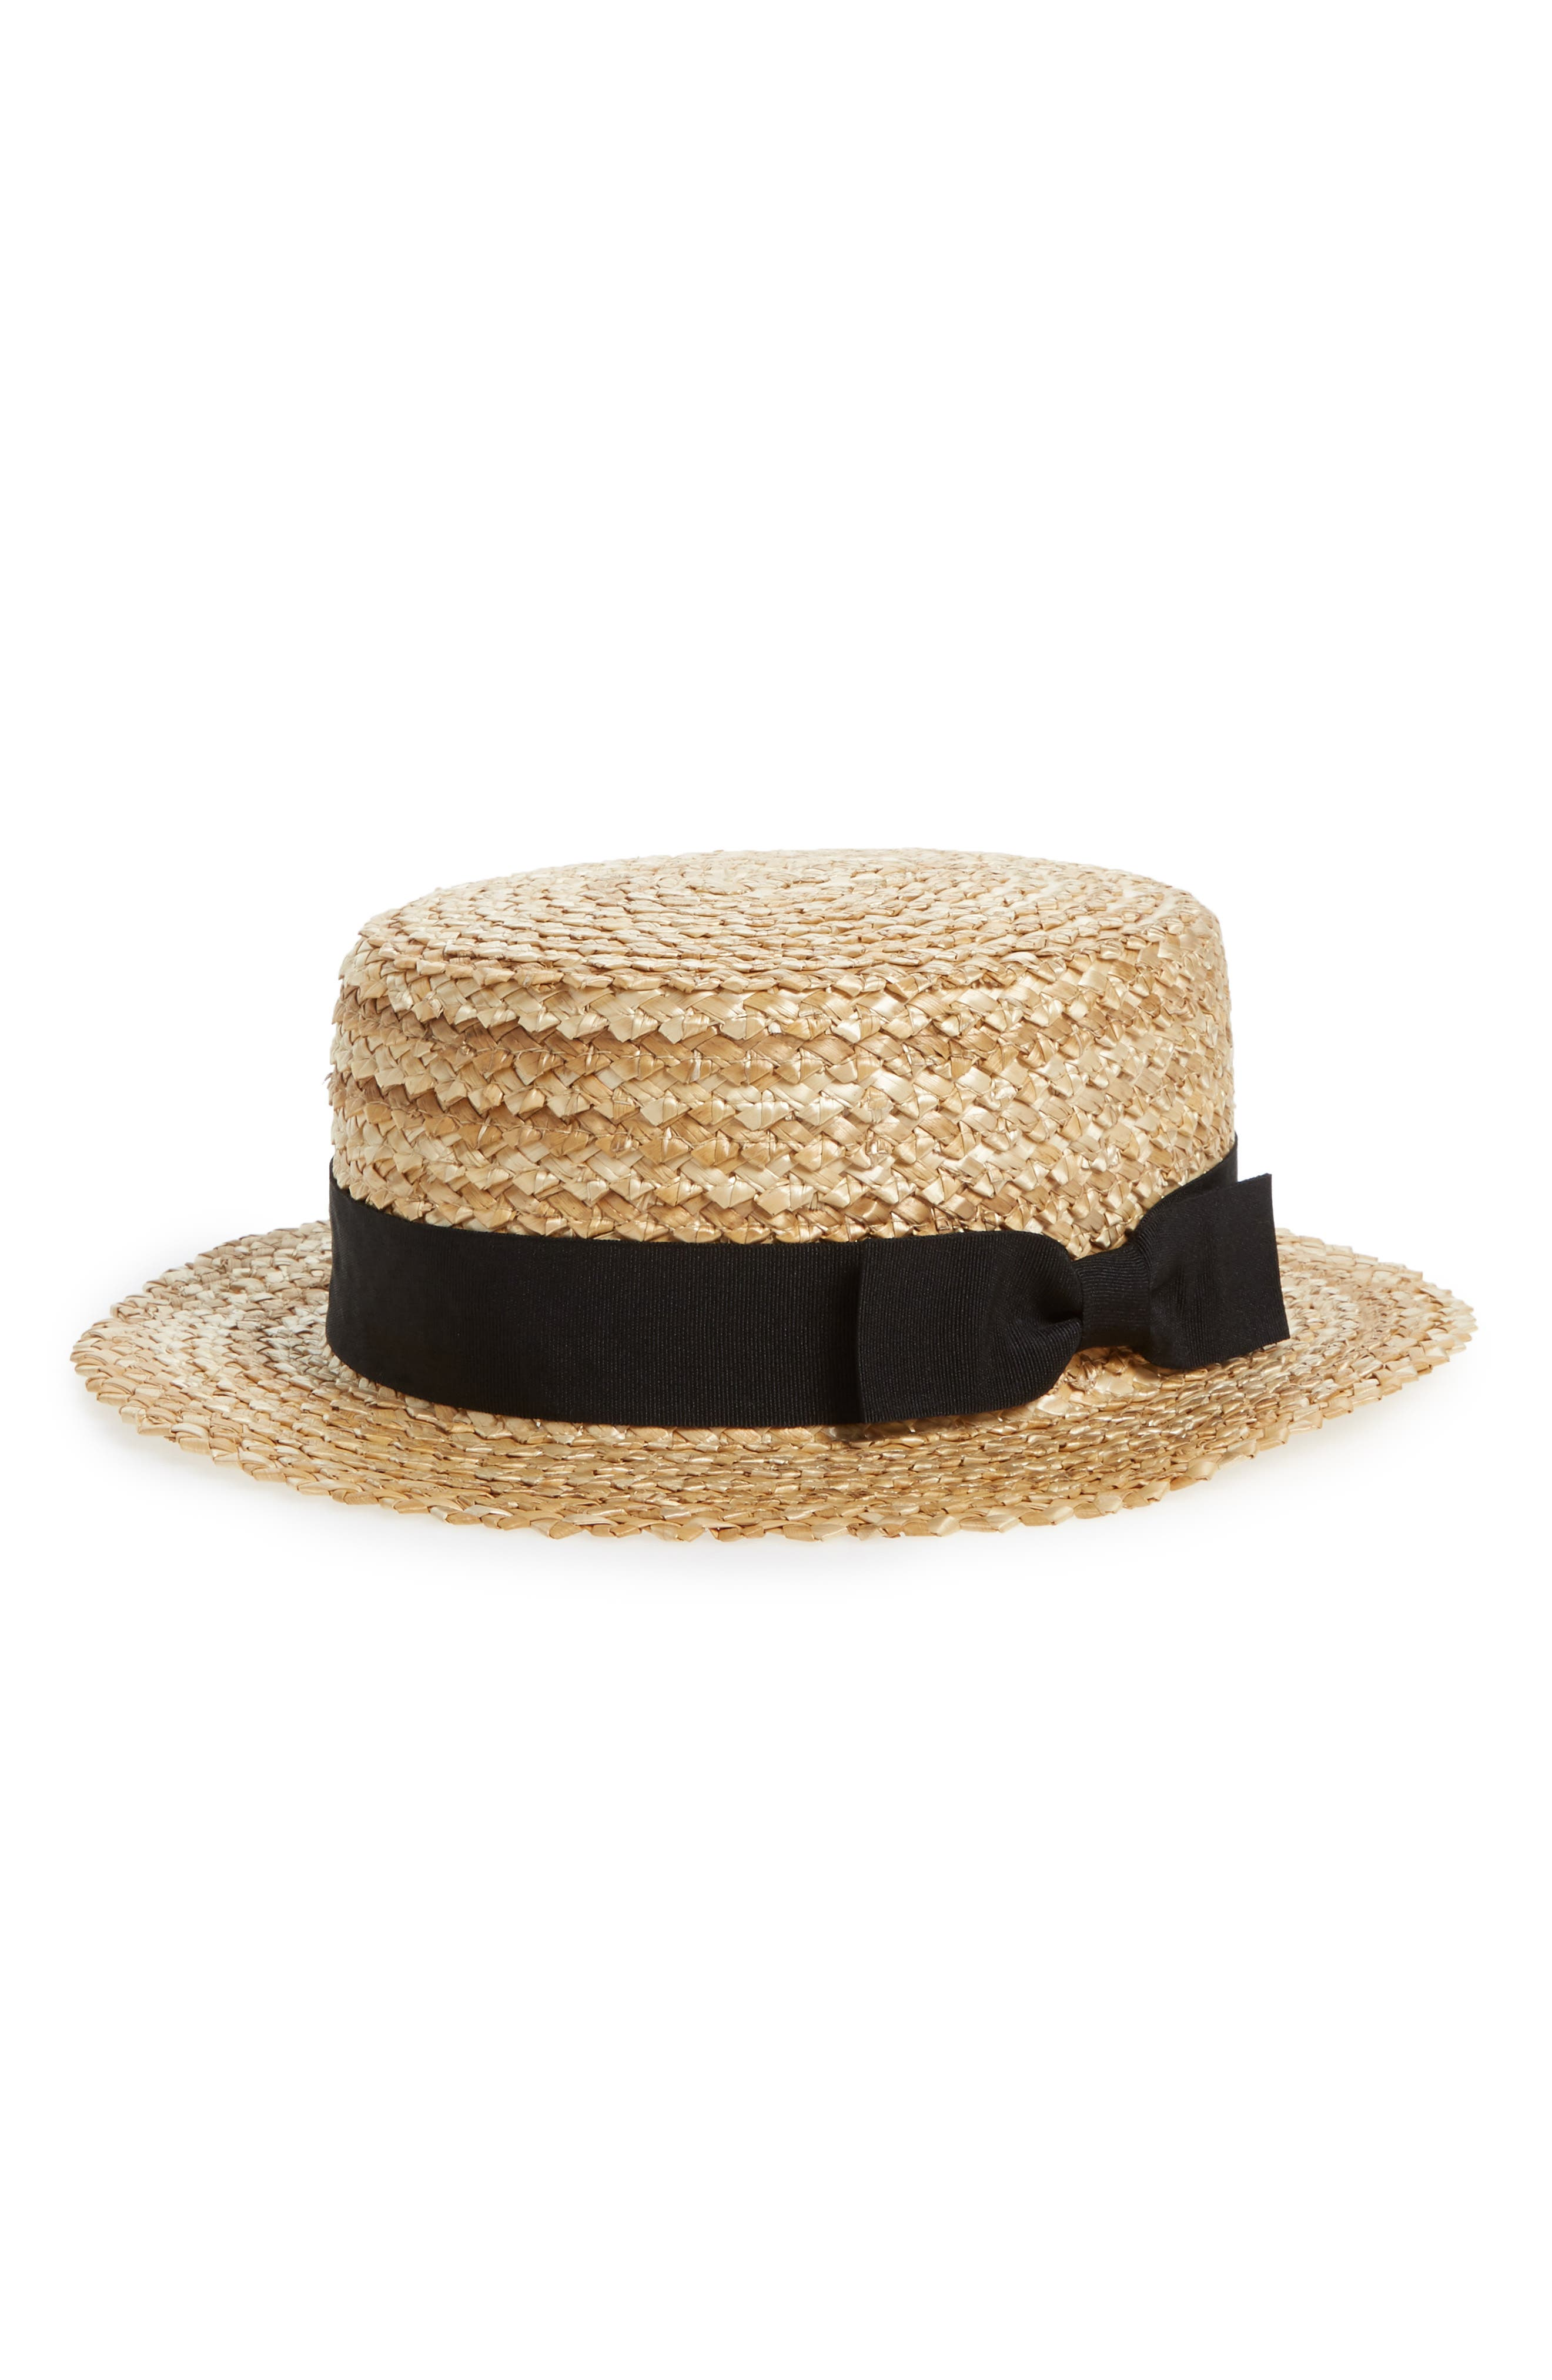 Ribbon Straw Boater Hat,                         Main,                         color, 250